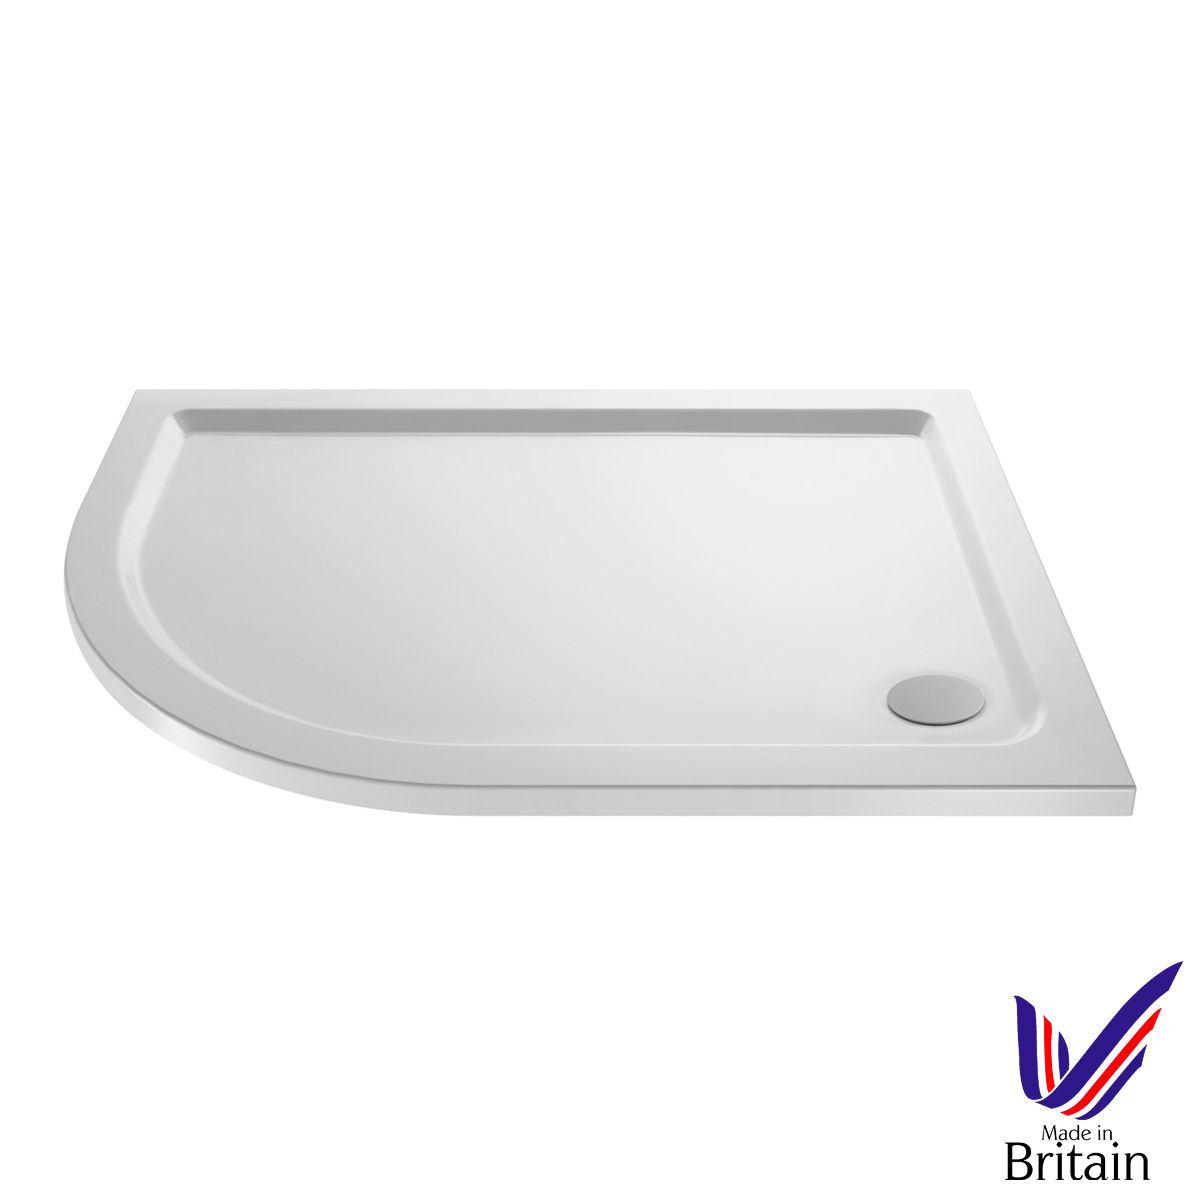 900 x 760 Shower Tray Offset Quadrant Low Profile Left Hand by Pearlstone